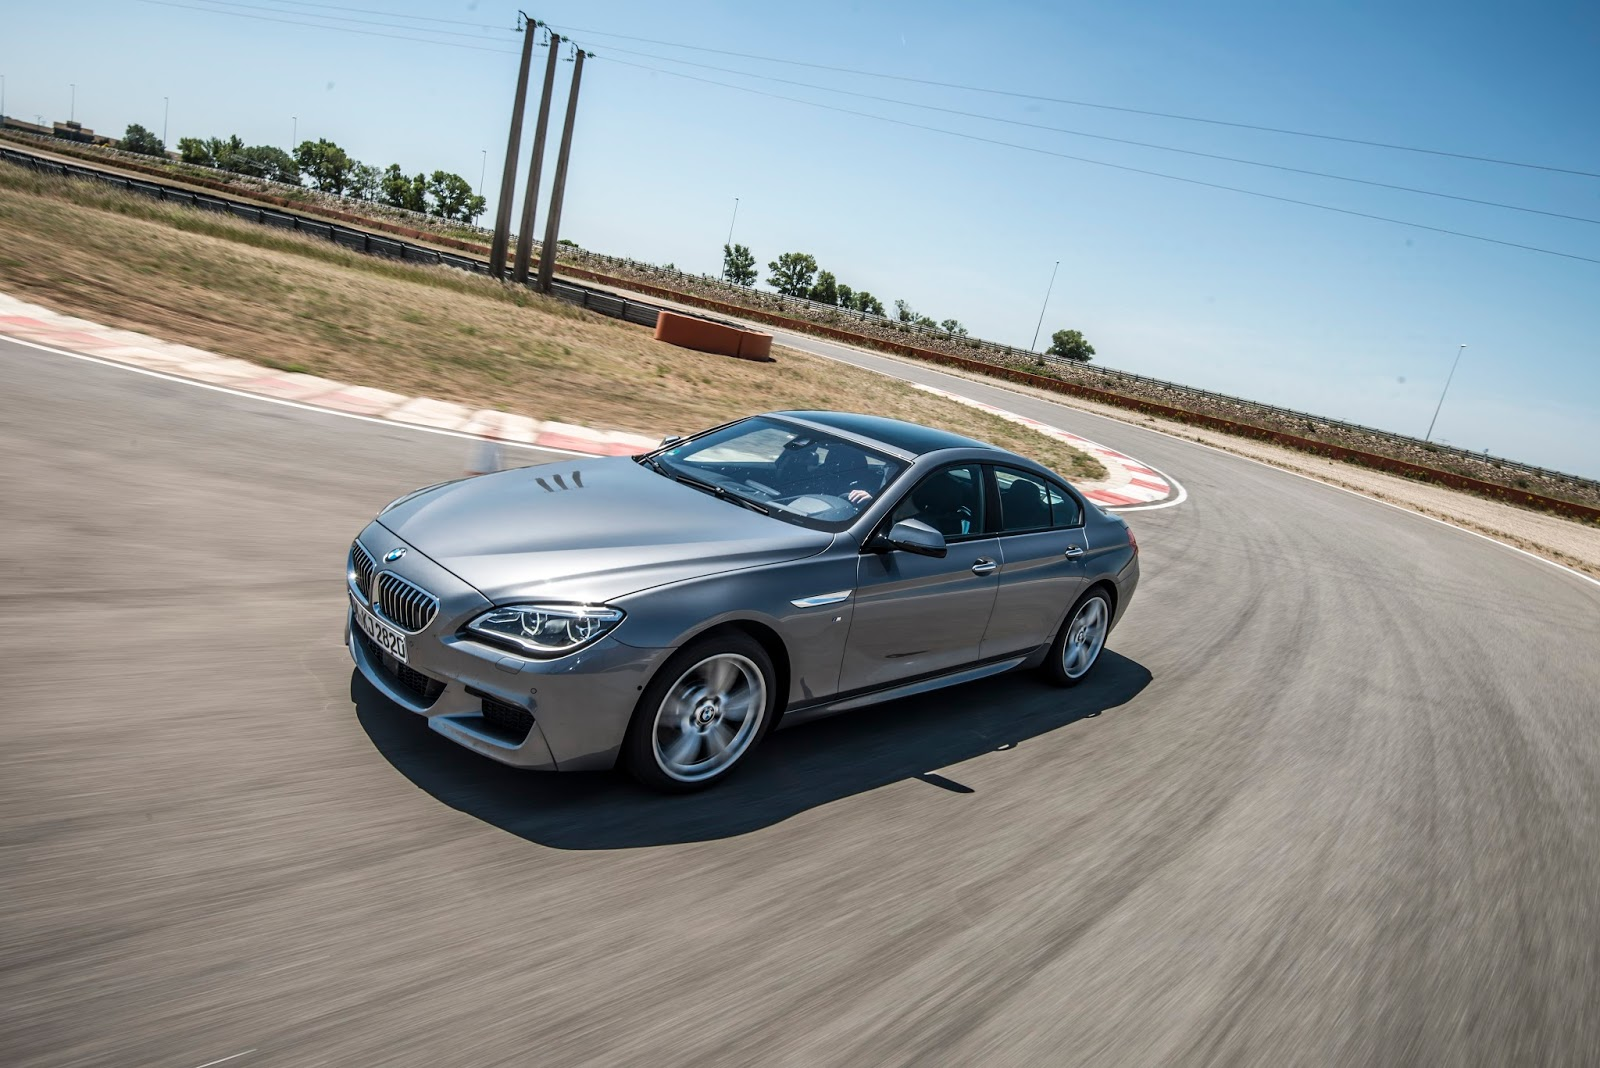 BMW bmw 6 gran coupe 2015 : Buckets & Spades - Men's Fashion, Design and Lifestyle Blog ...